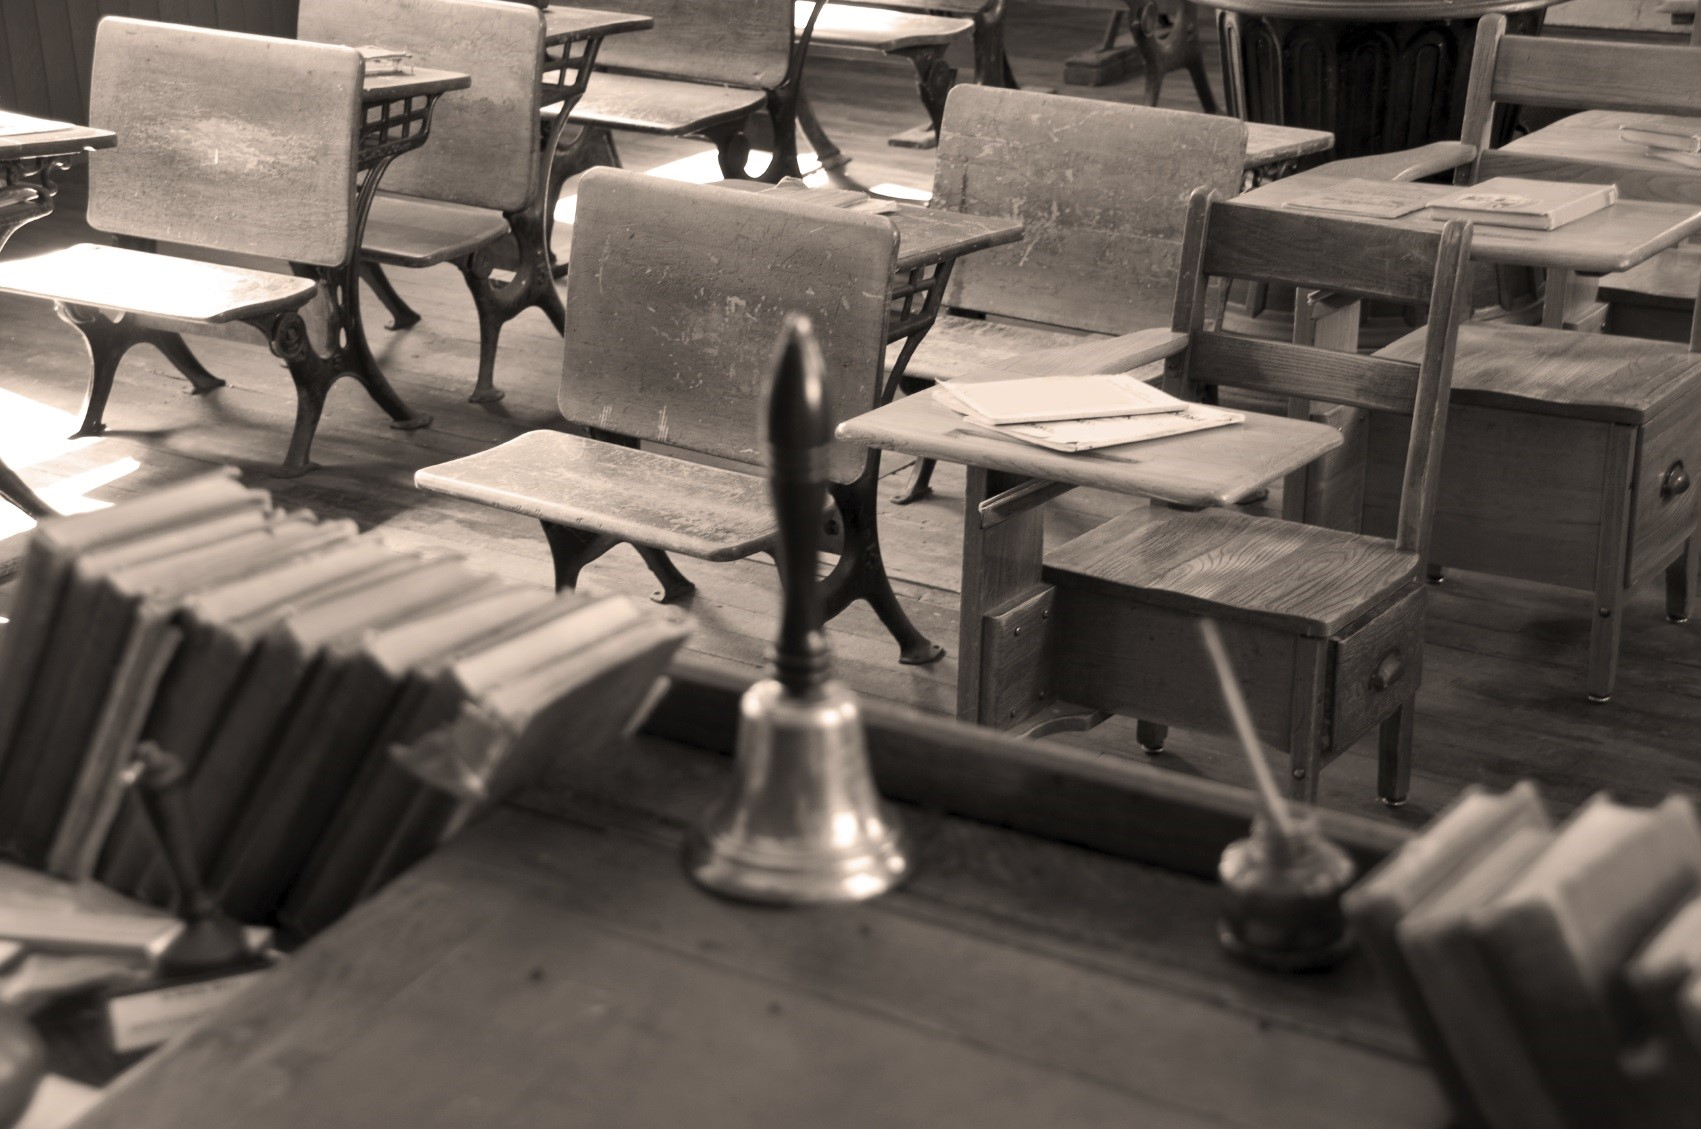 Timeline: A history of education | Tes News